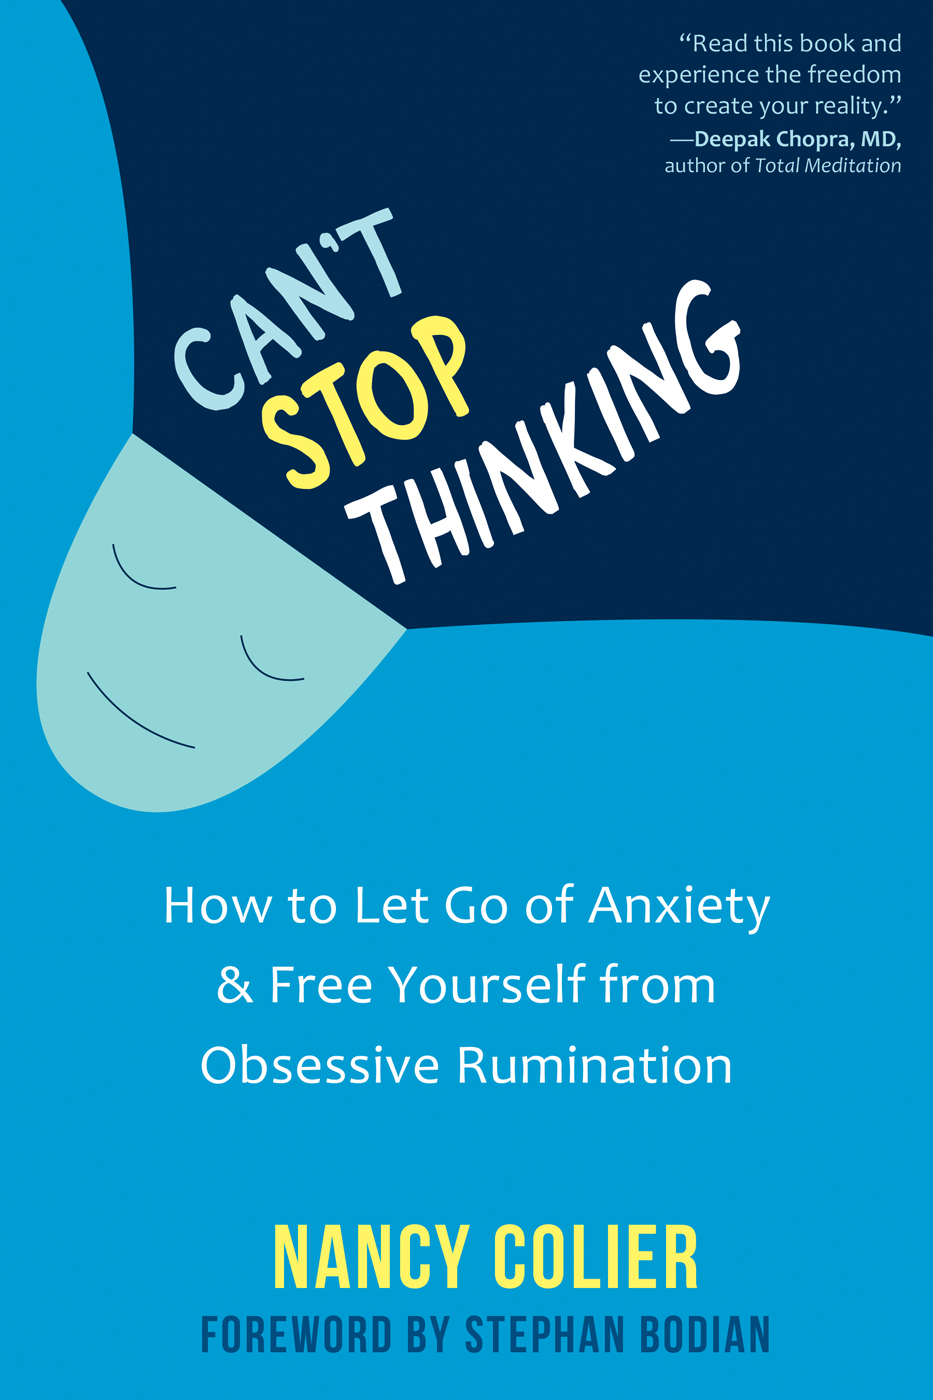 Can't Stop Thinking: How to Let Go of Anxiety and Free Yourself from Obsessive Rumination